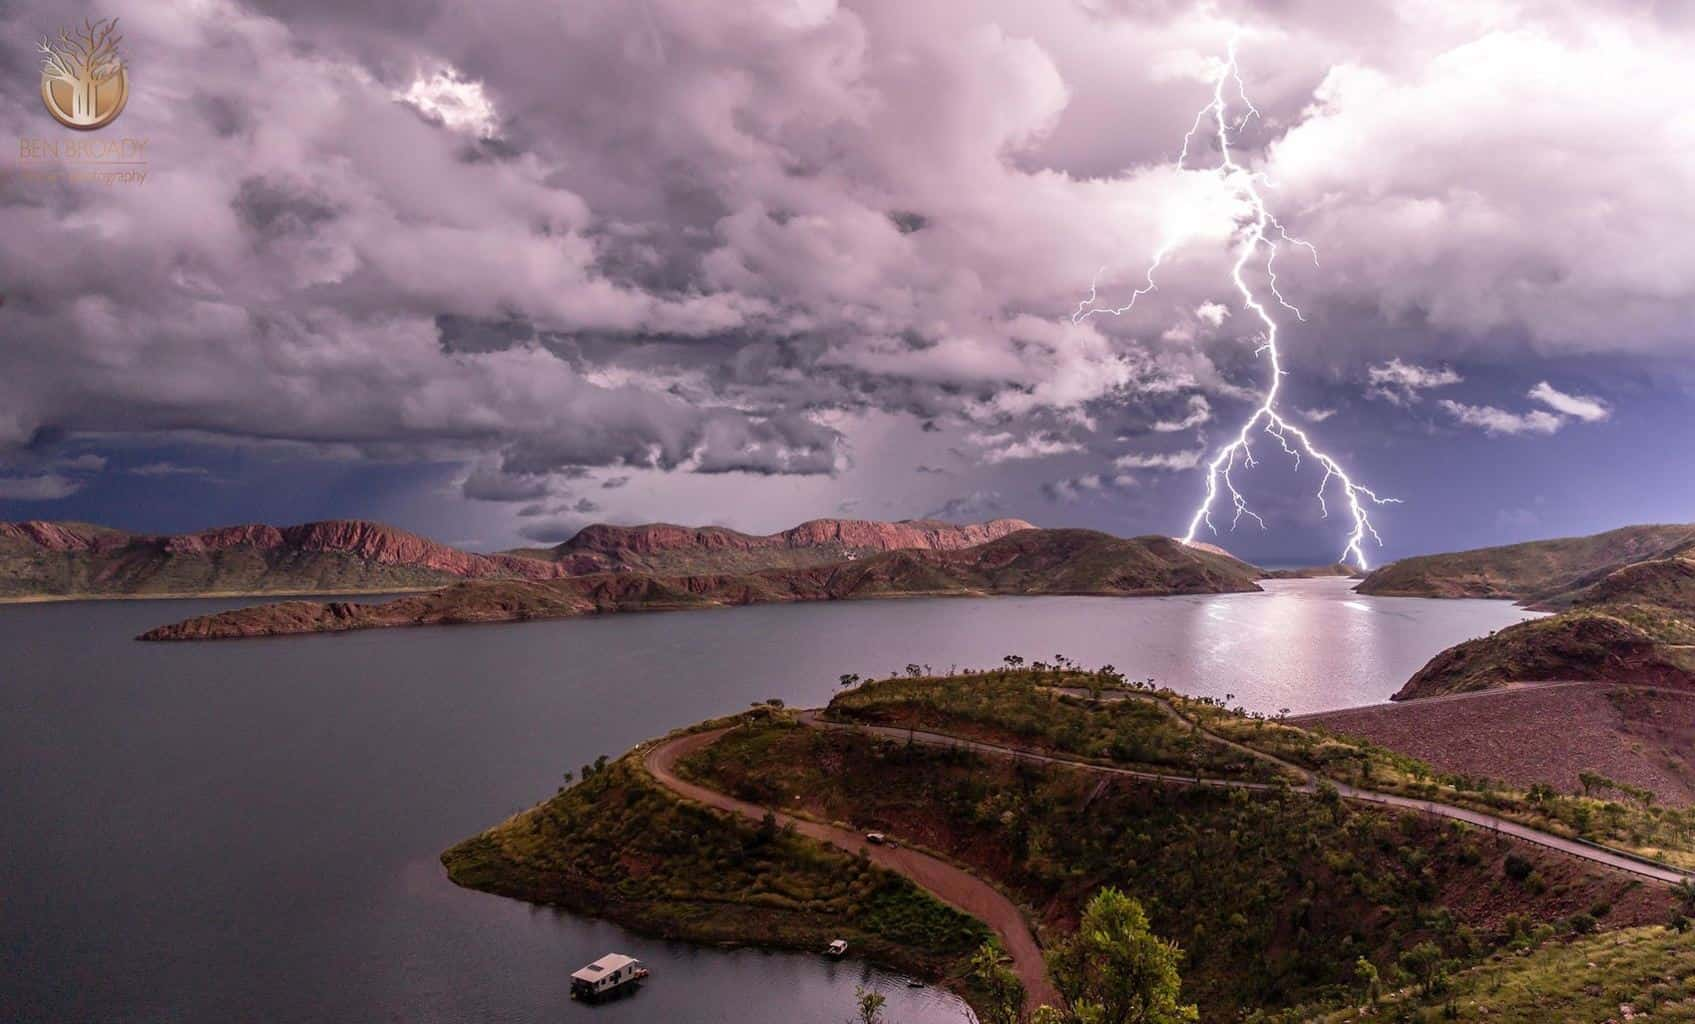 This page is awesome. Some people on here have some great knowledge about lighting, I would love to hear their thoughts on this bad boy. Like Dale in the previous post, this is one I had been dreaming up from outback Australia, though I am on west coast in far north Western Australia.